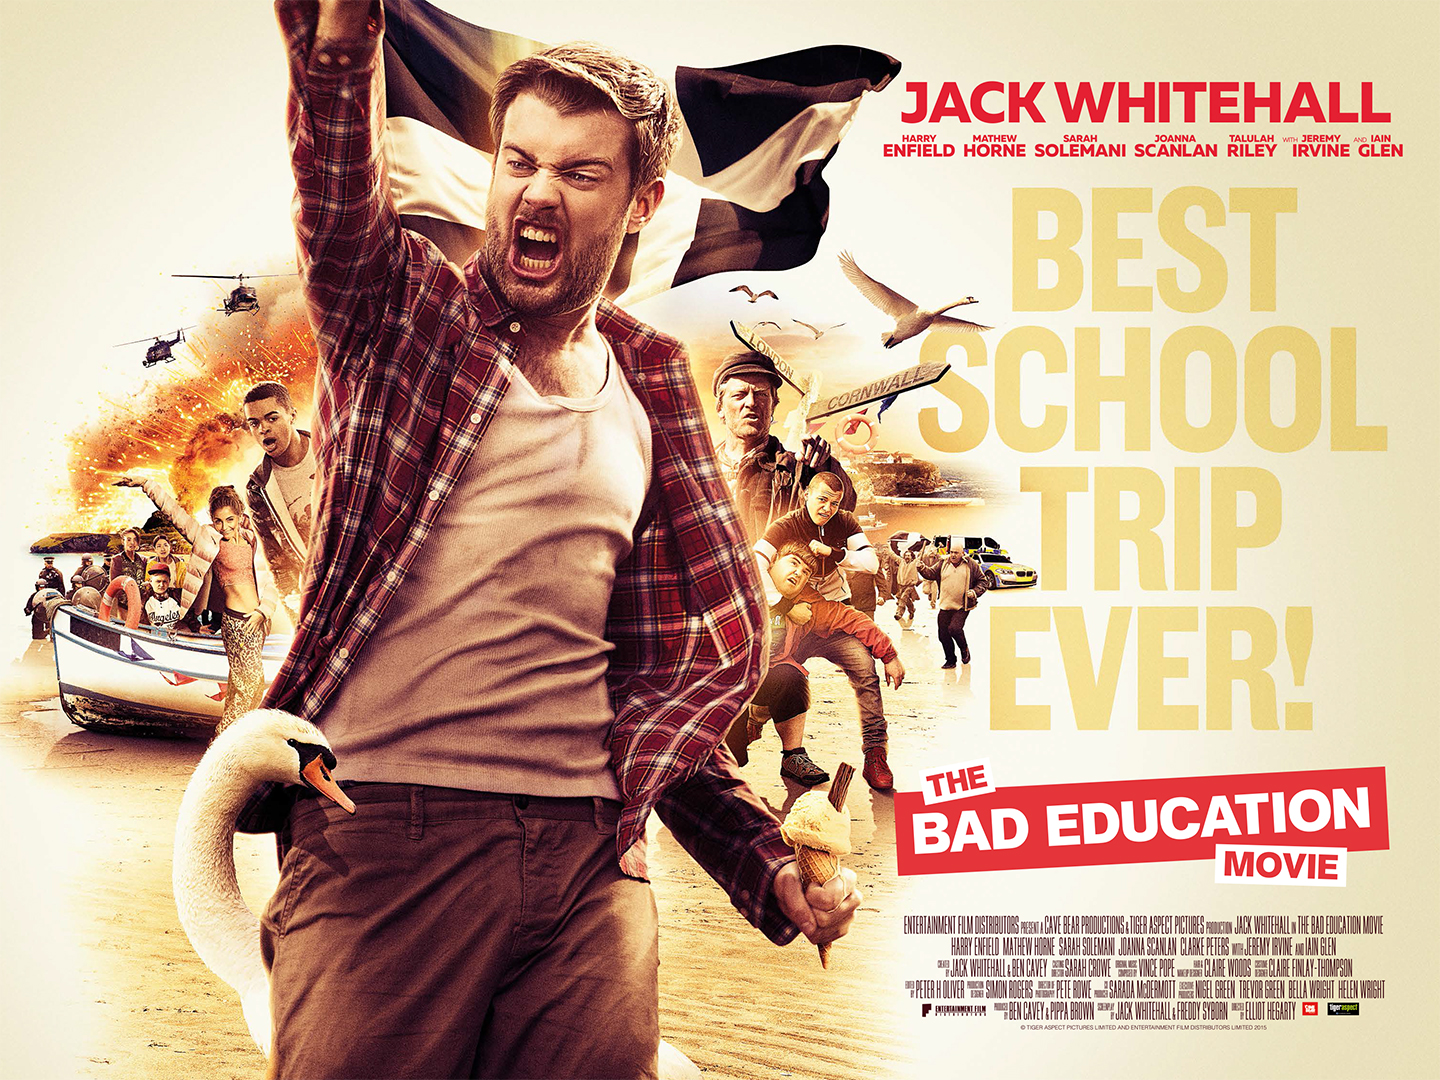 watch trailer for the �bad education� movie starring jack